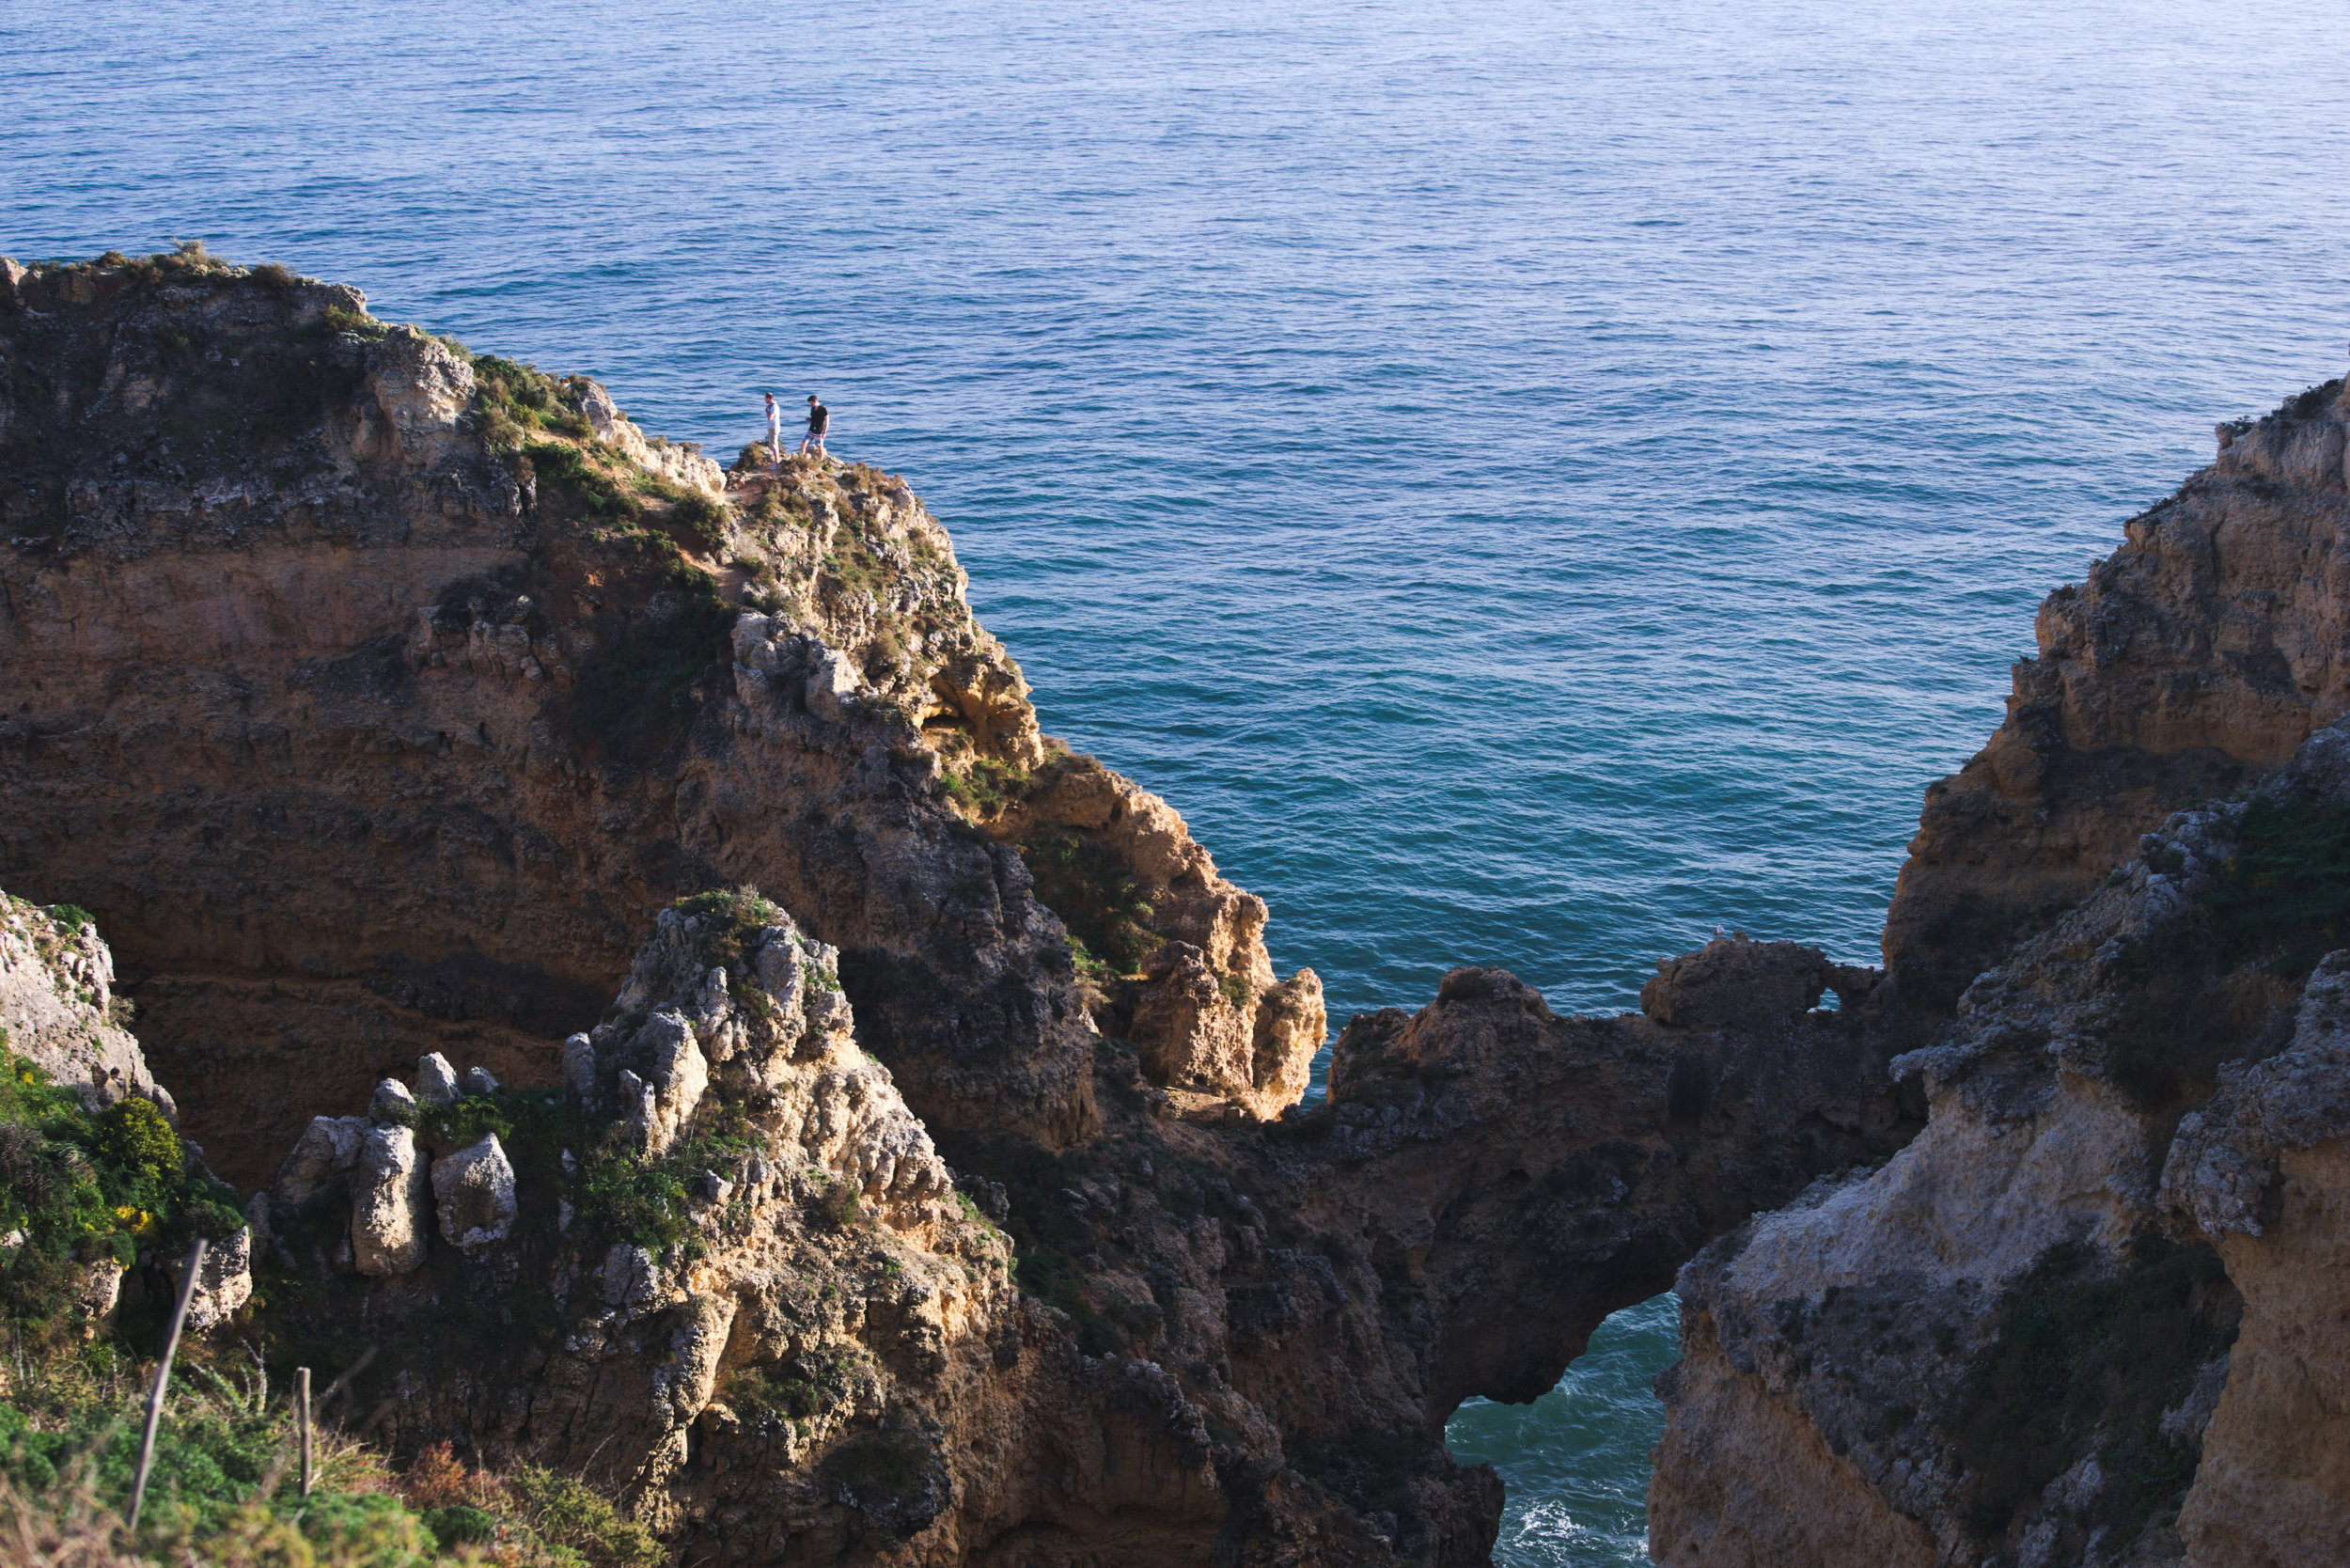 CLAMBERING OVER LAGOS' CLIFFS WAS NOT AS DANGEROUS AS IT LOOKED.